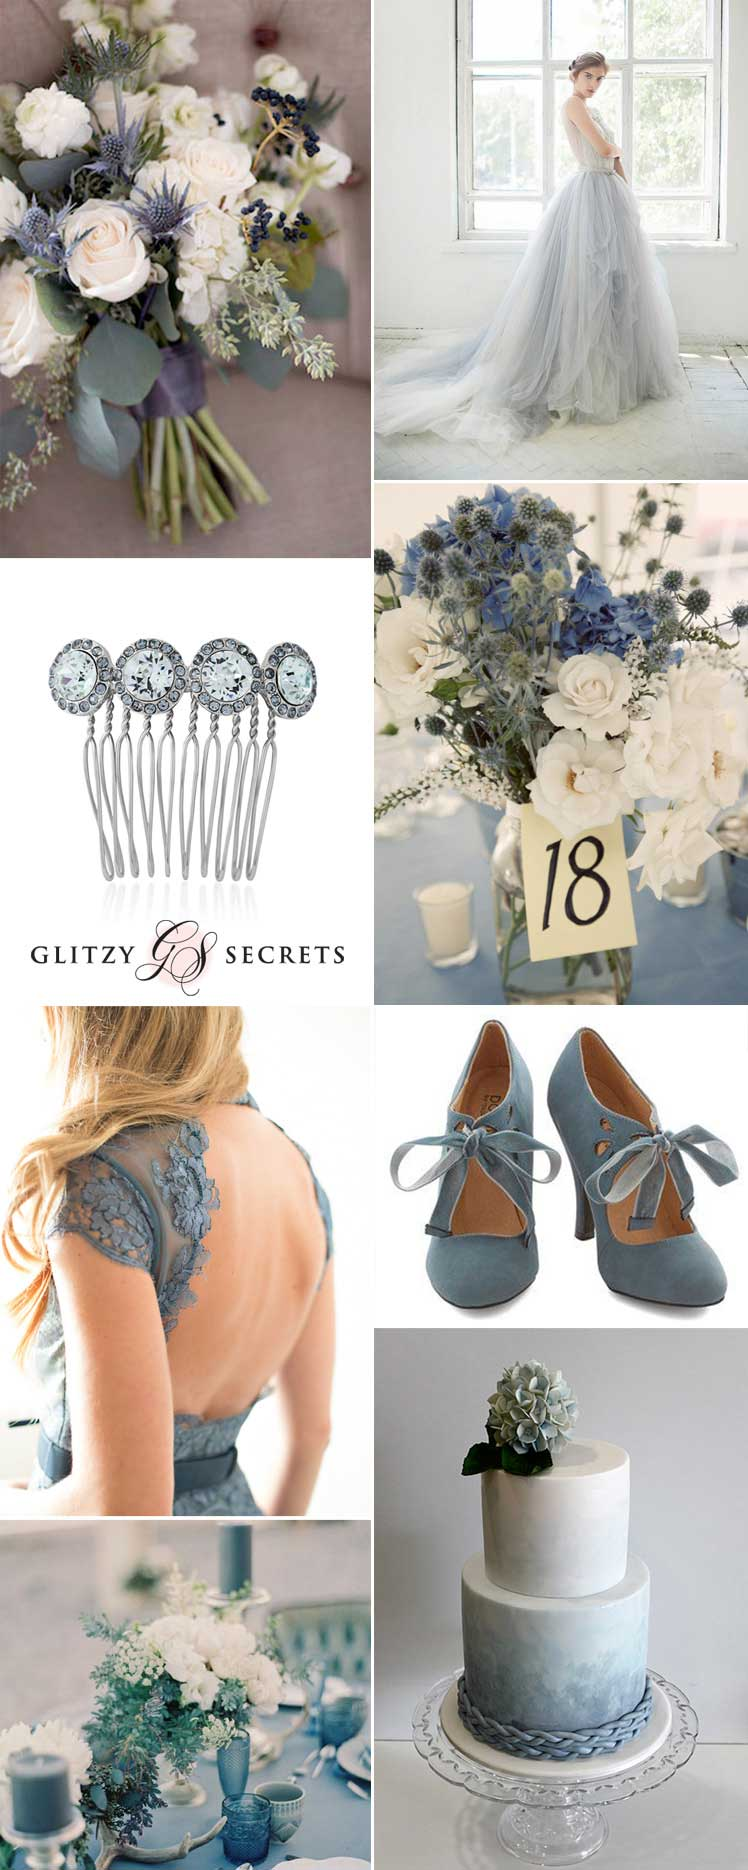 Inspiration for a chic grey and dusty blue wedding theme